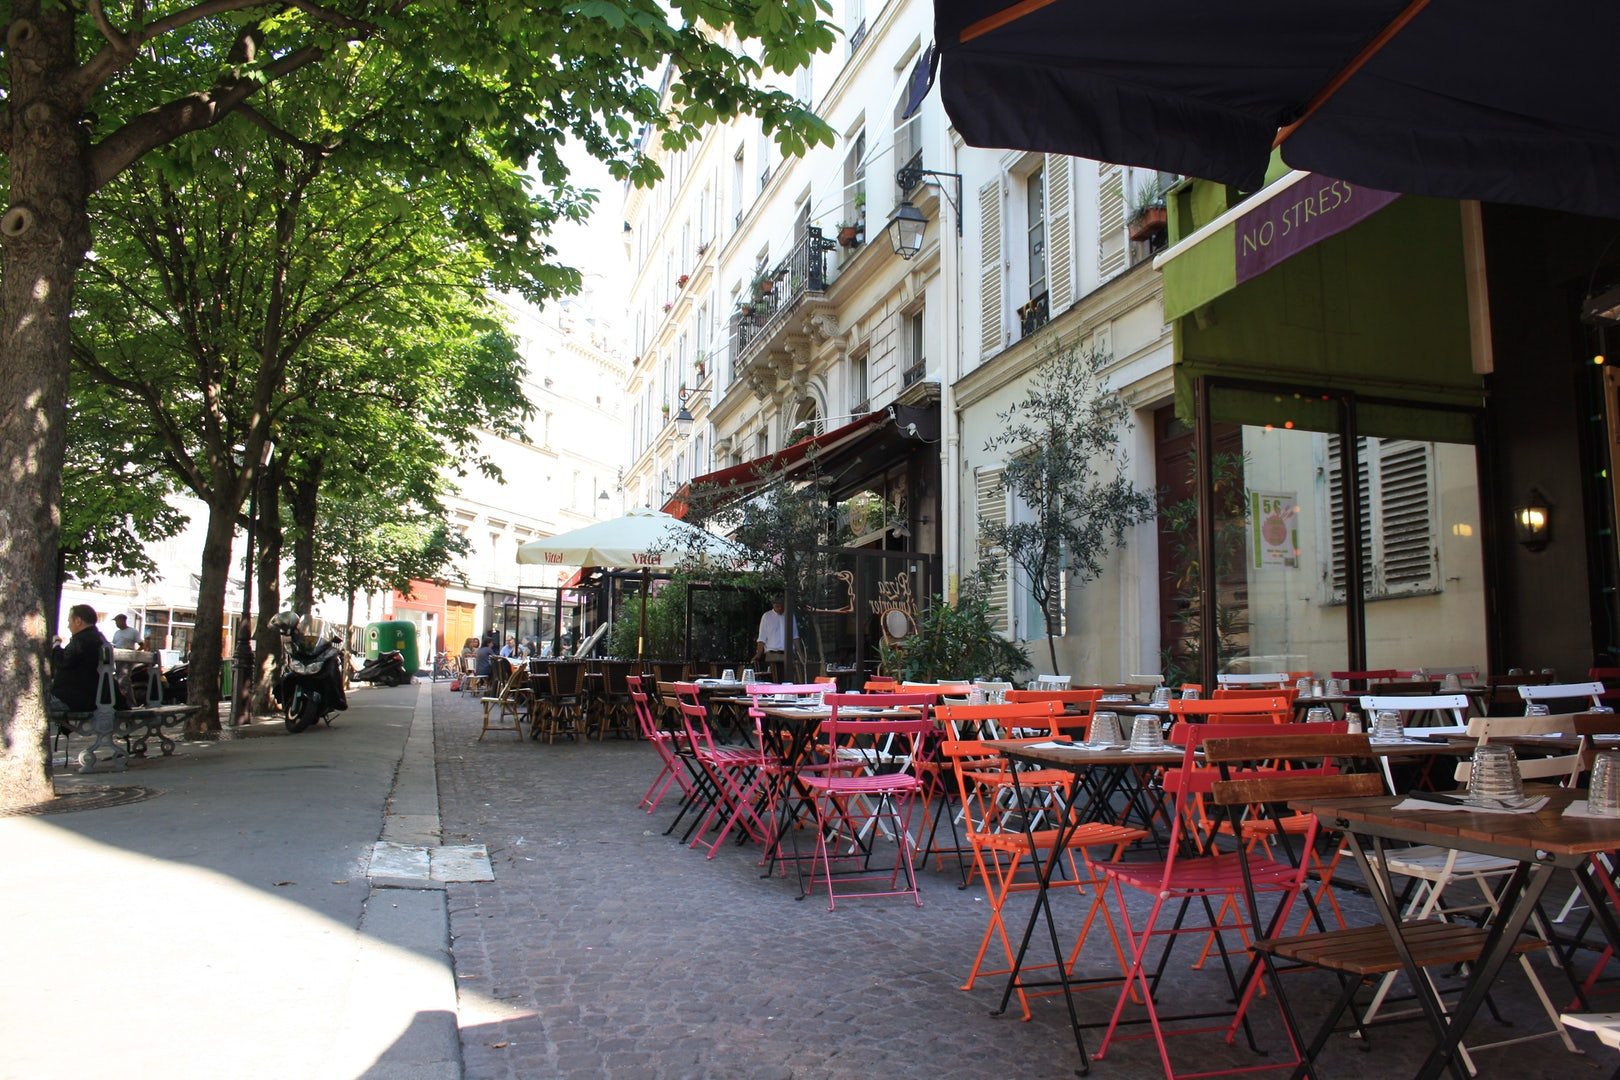 cafés at Place Gustave Toudouze